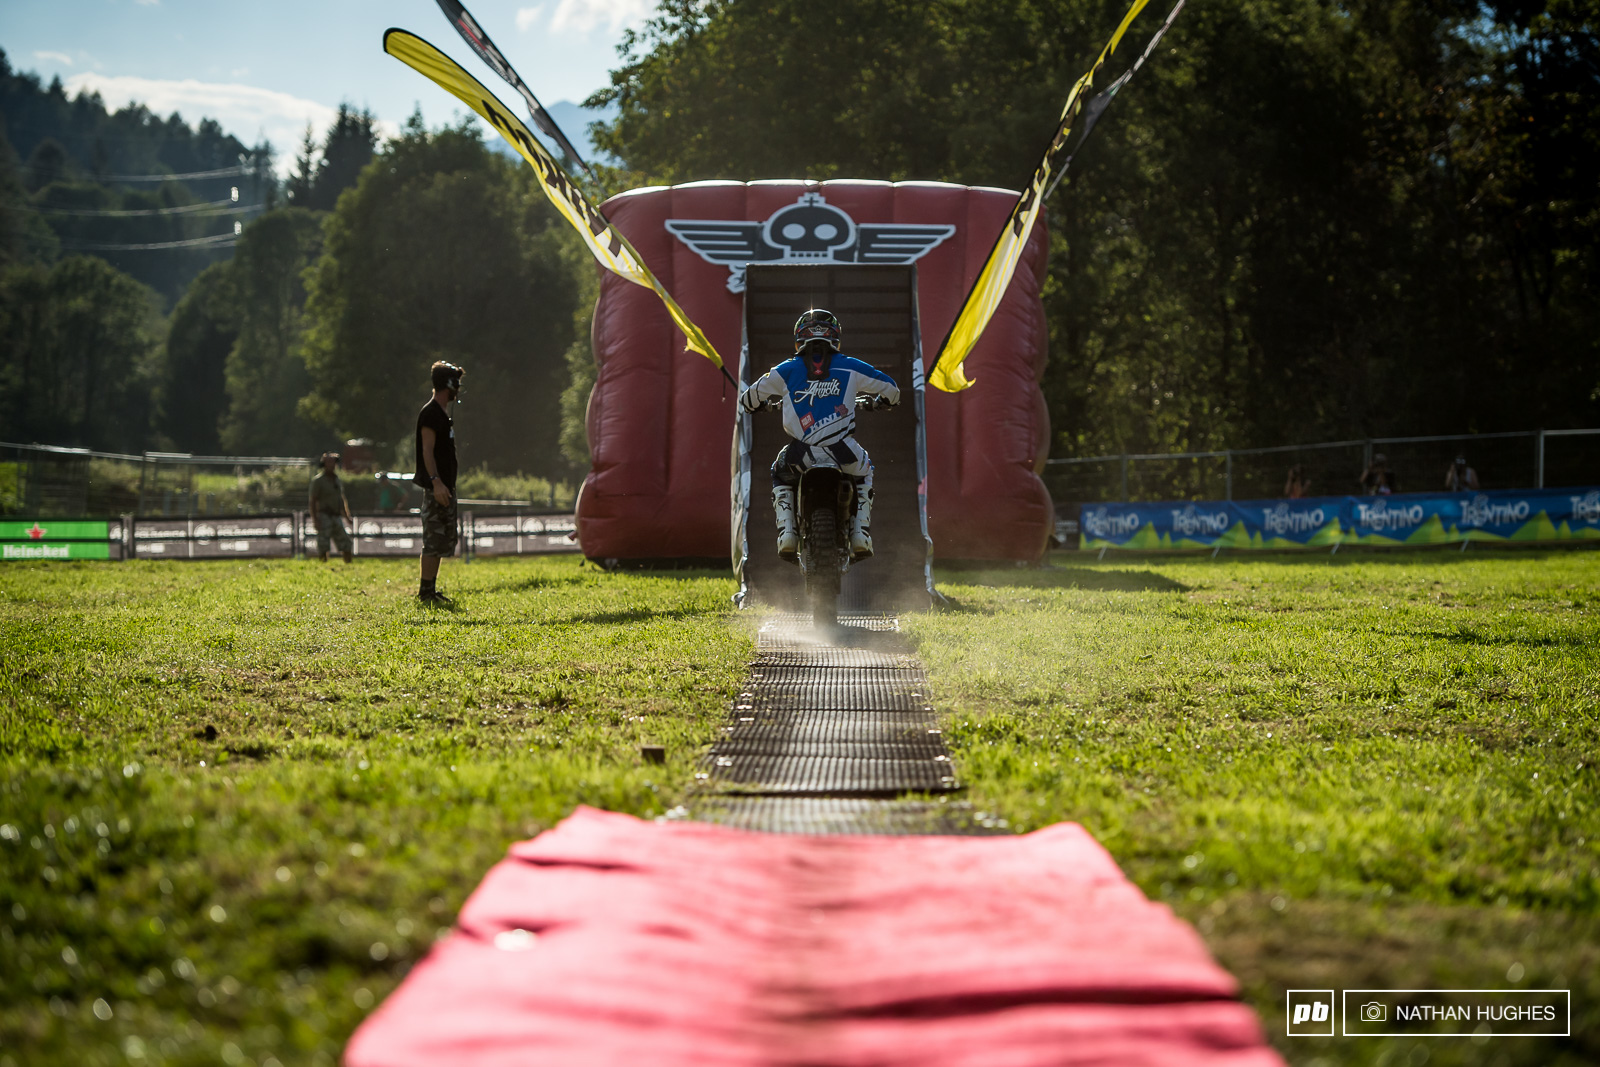 Val di Sole organisers put on a Freestyle Moto show today after the training sessions.